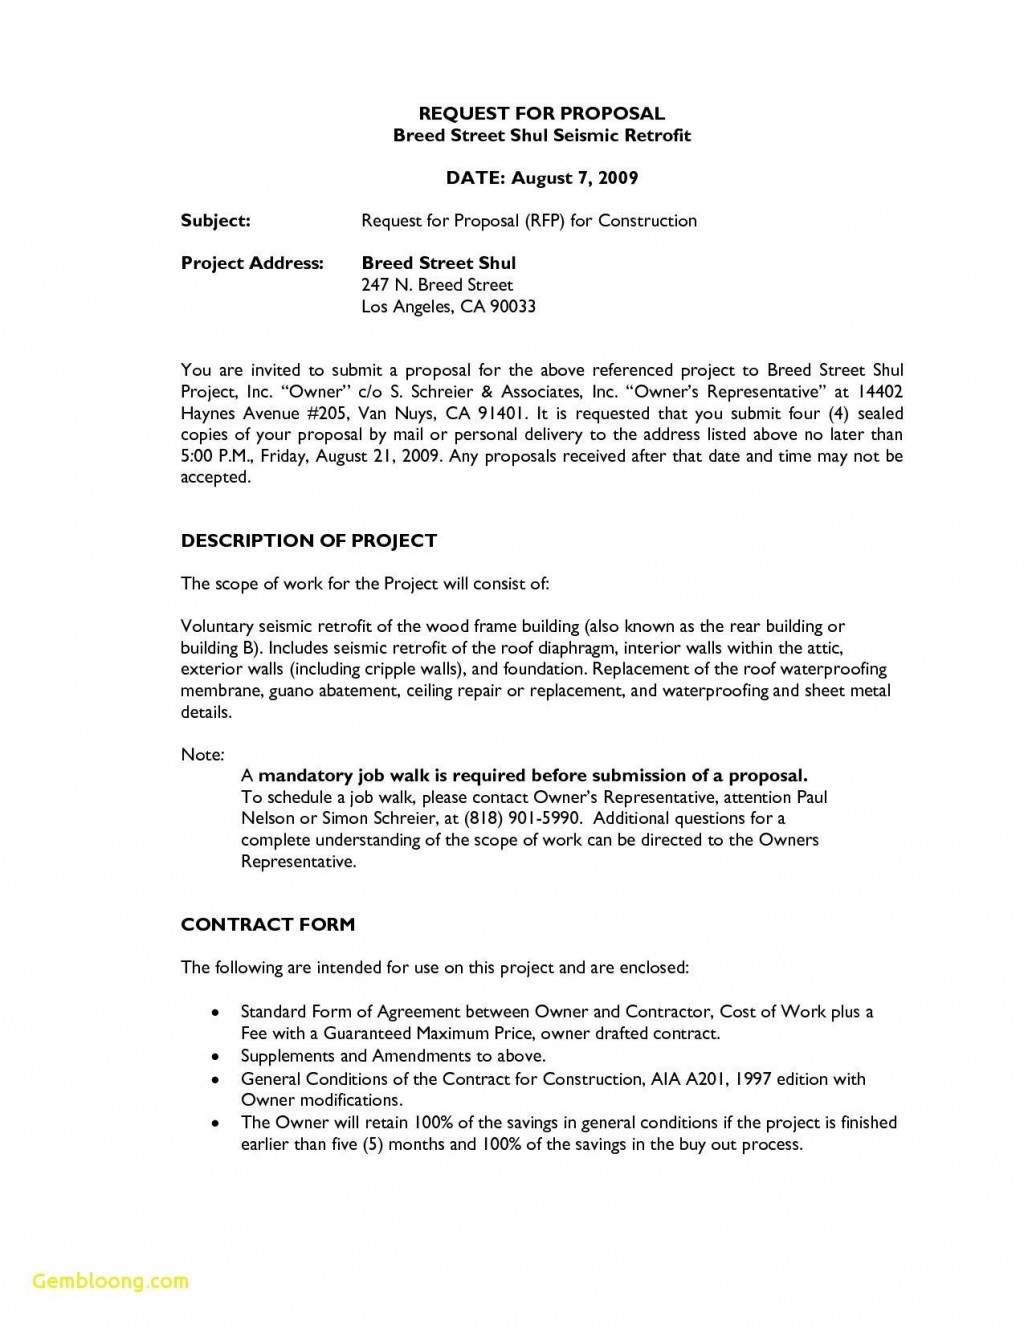 009 Striking Request For Proposal Rfp Template Construction High Resolution Large